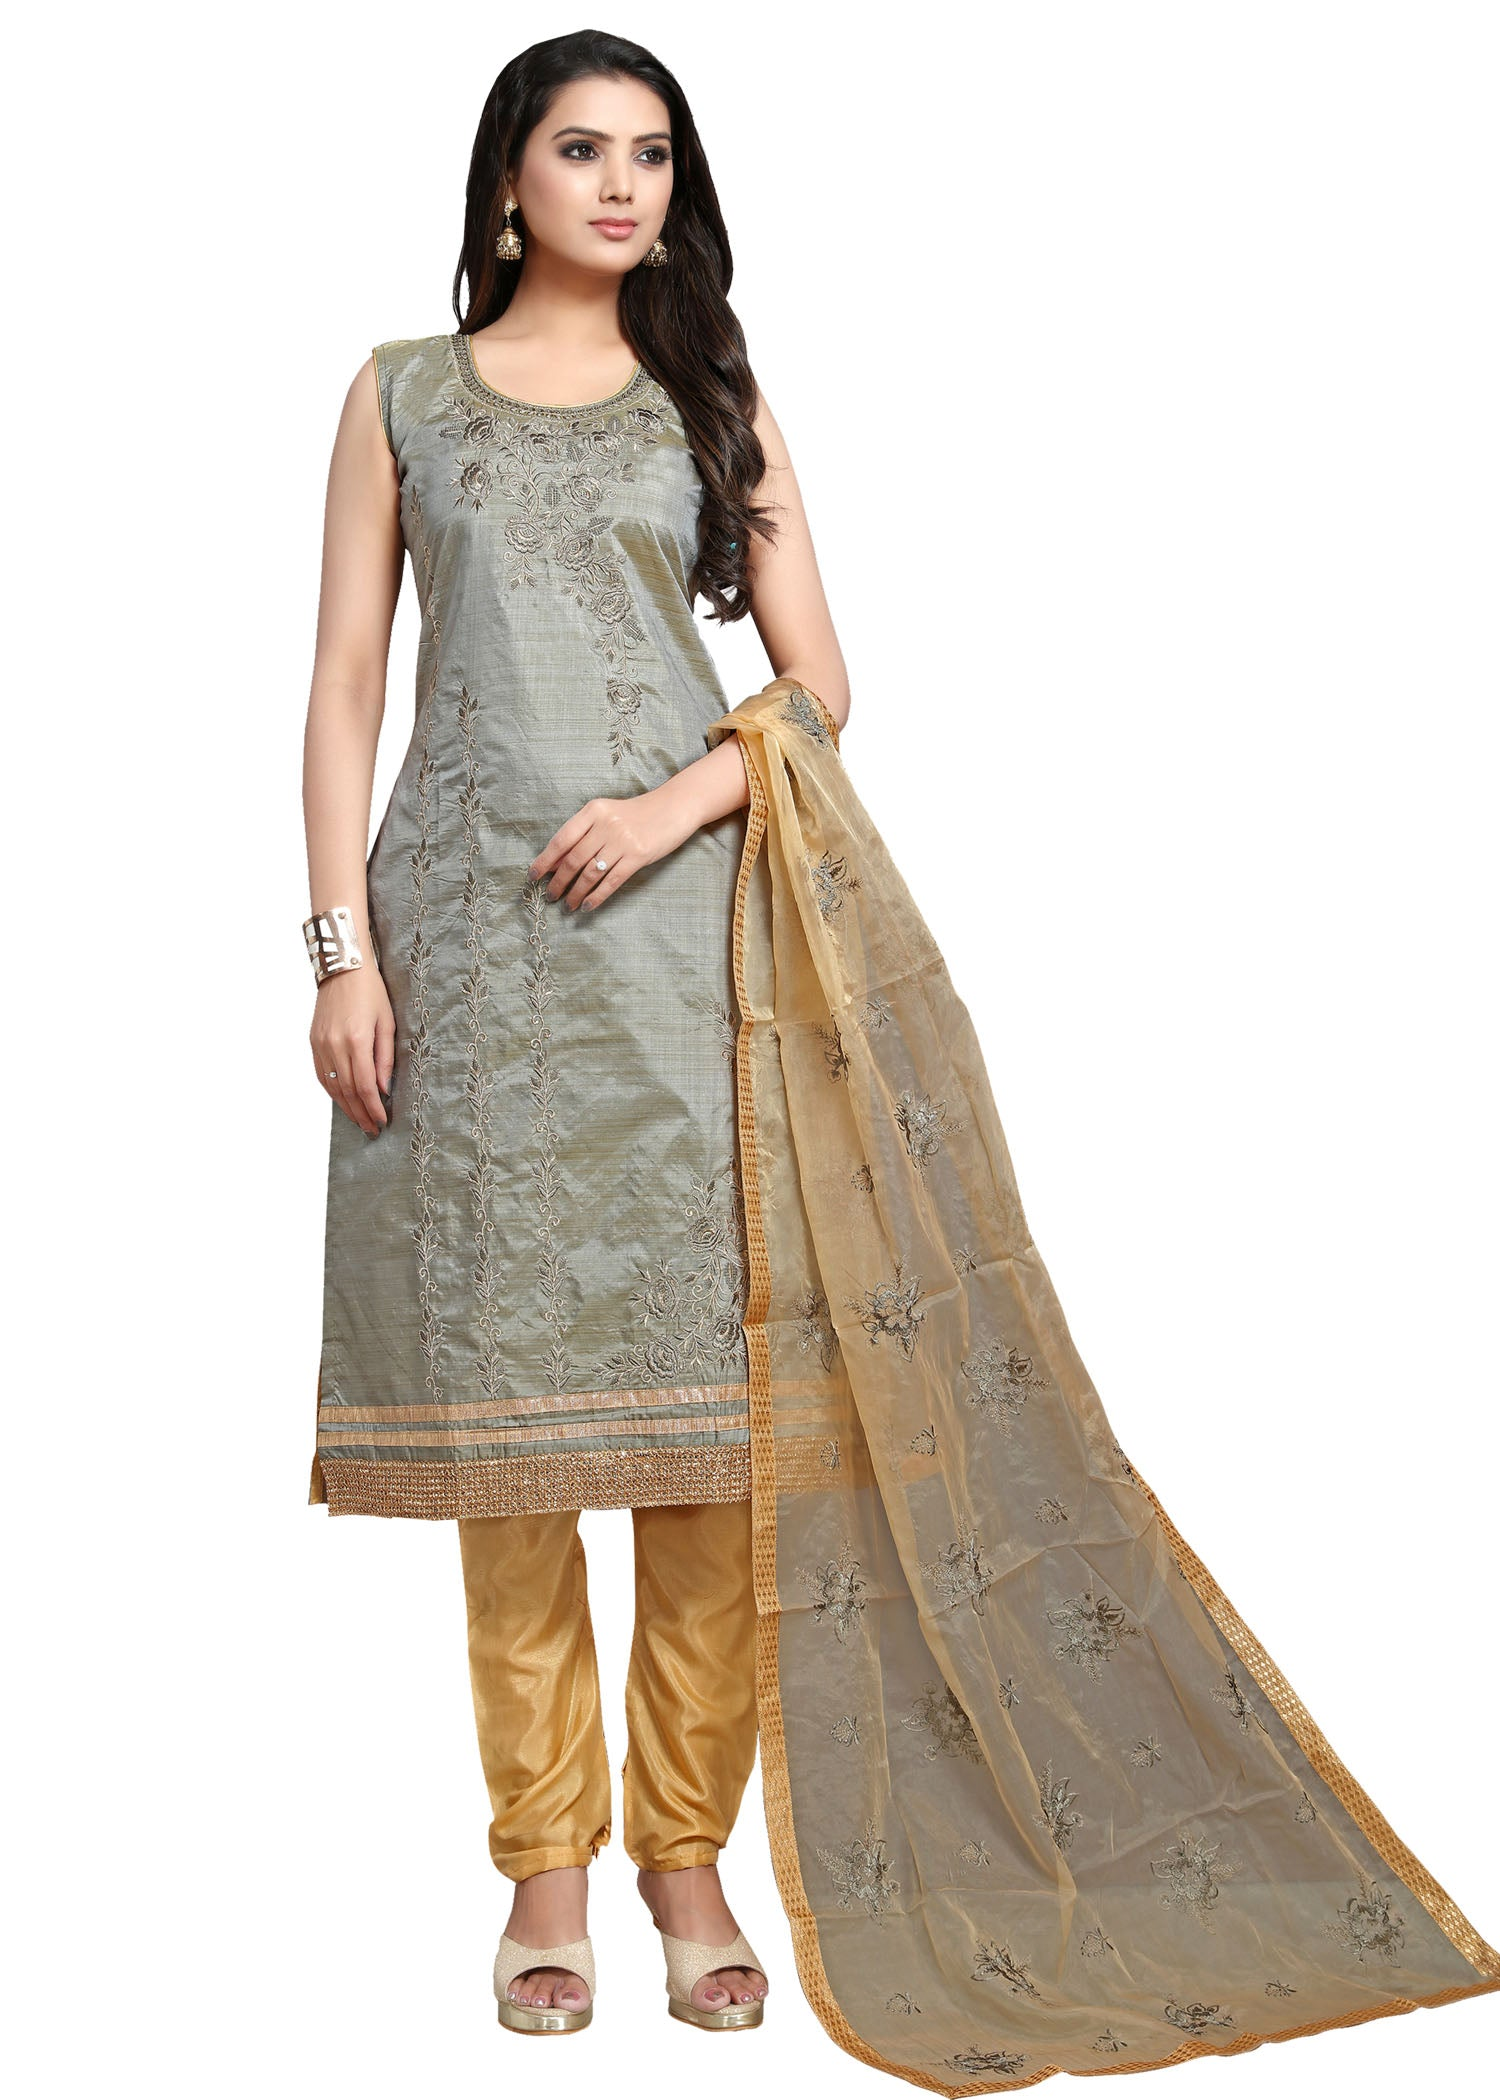 Chanderi Silk Churidar Suit with Resham - Grey